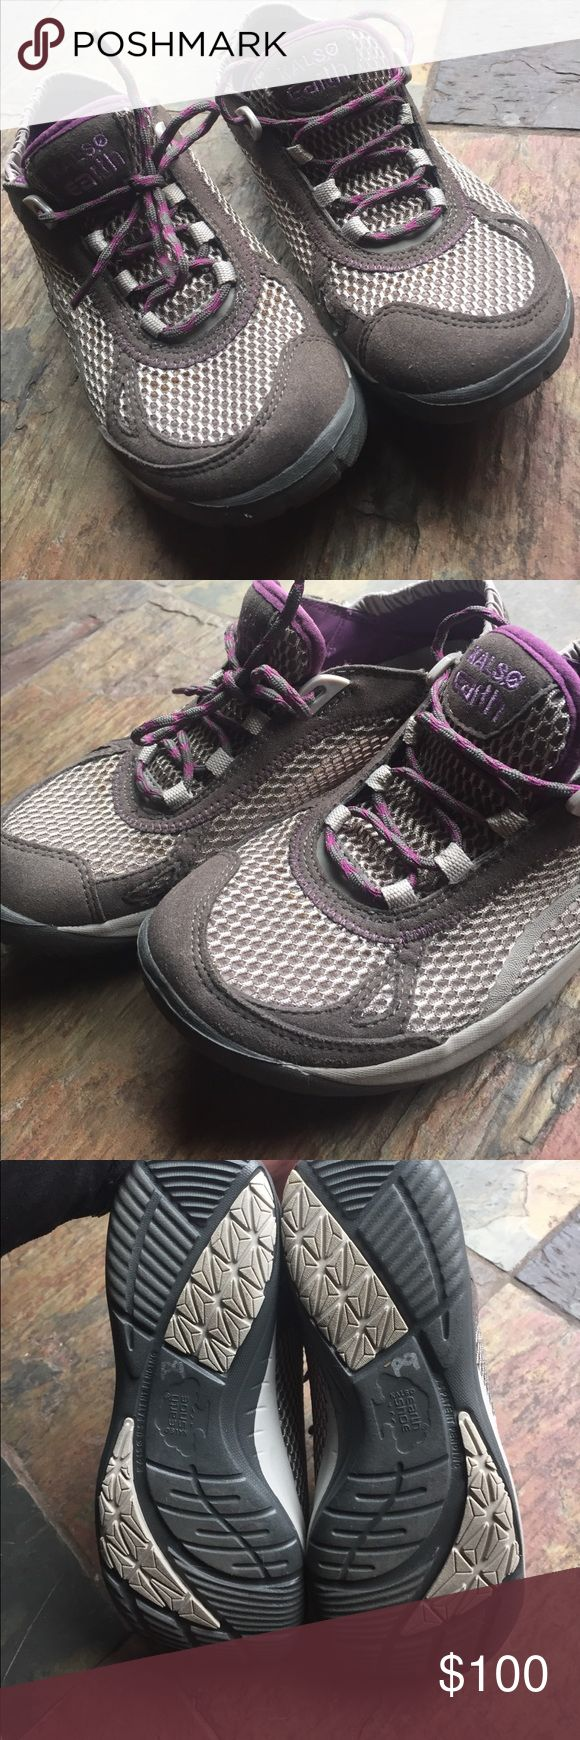 Kalso Earth Shoe 6.5 🌏 *Like New* Kalso Earth Shoes size 6.5 Like New Adorable Shoes Athletic Shoes